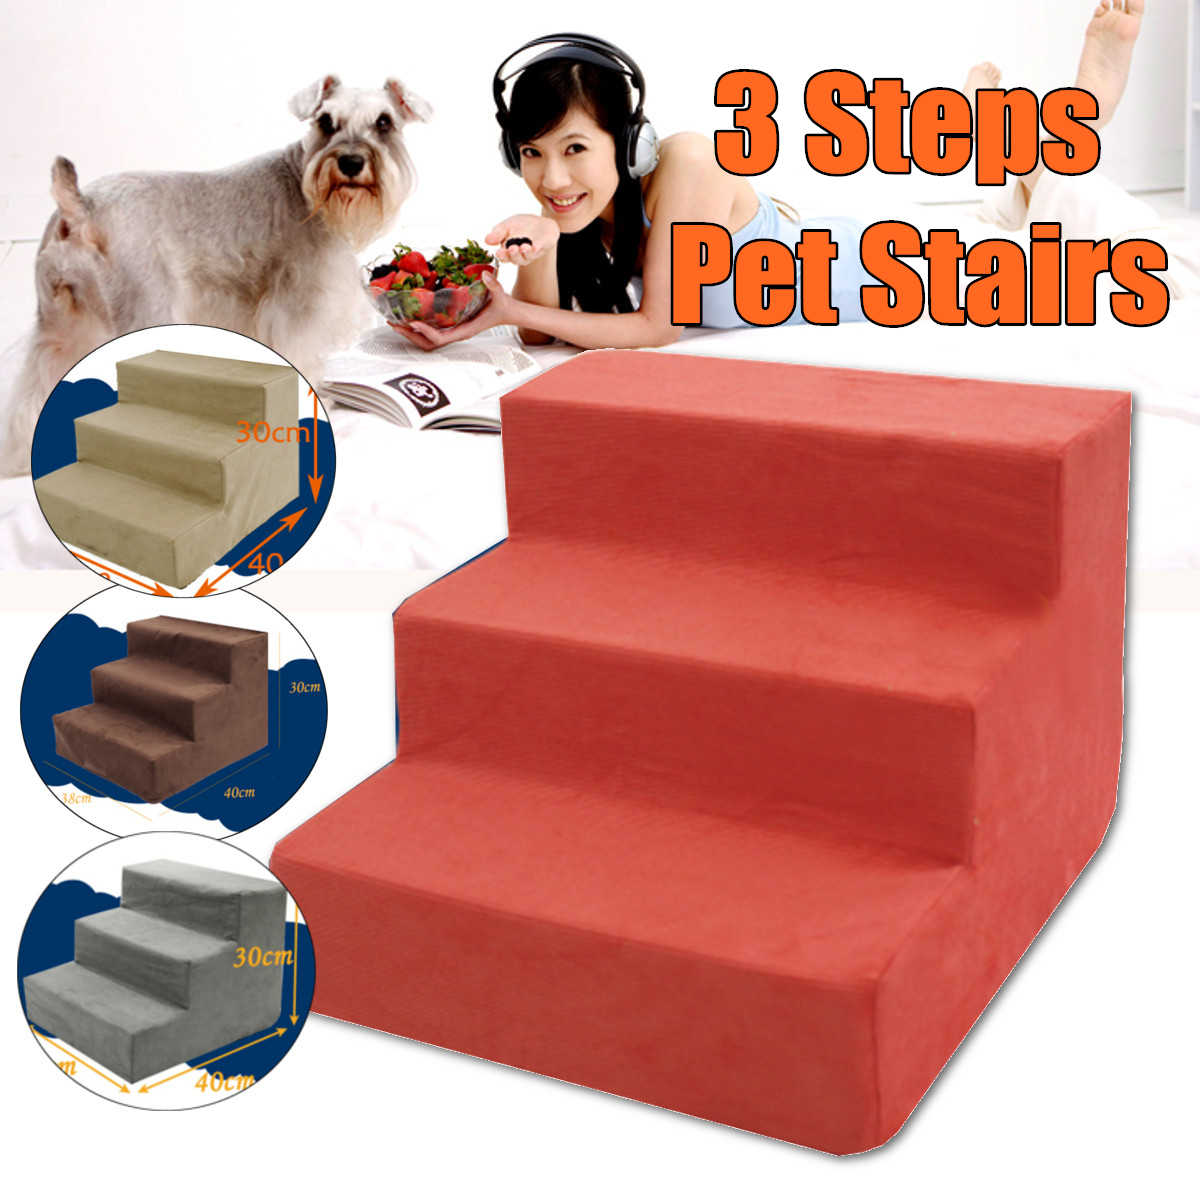 3 Steps Portable Pet Dog Cat Stairs Ramp Easy Way Ladder Cover Indoor Nonslip Sofa Bed Leather Cover Dog Accessories Universal